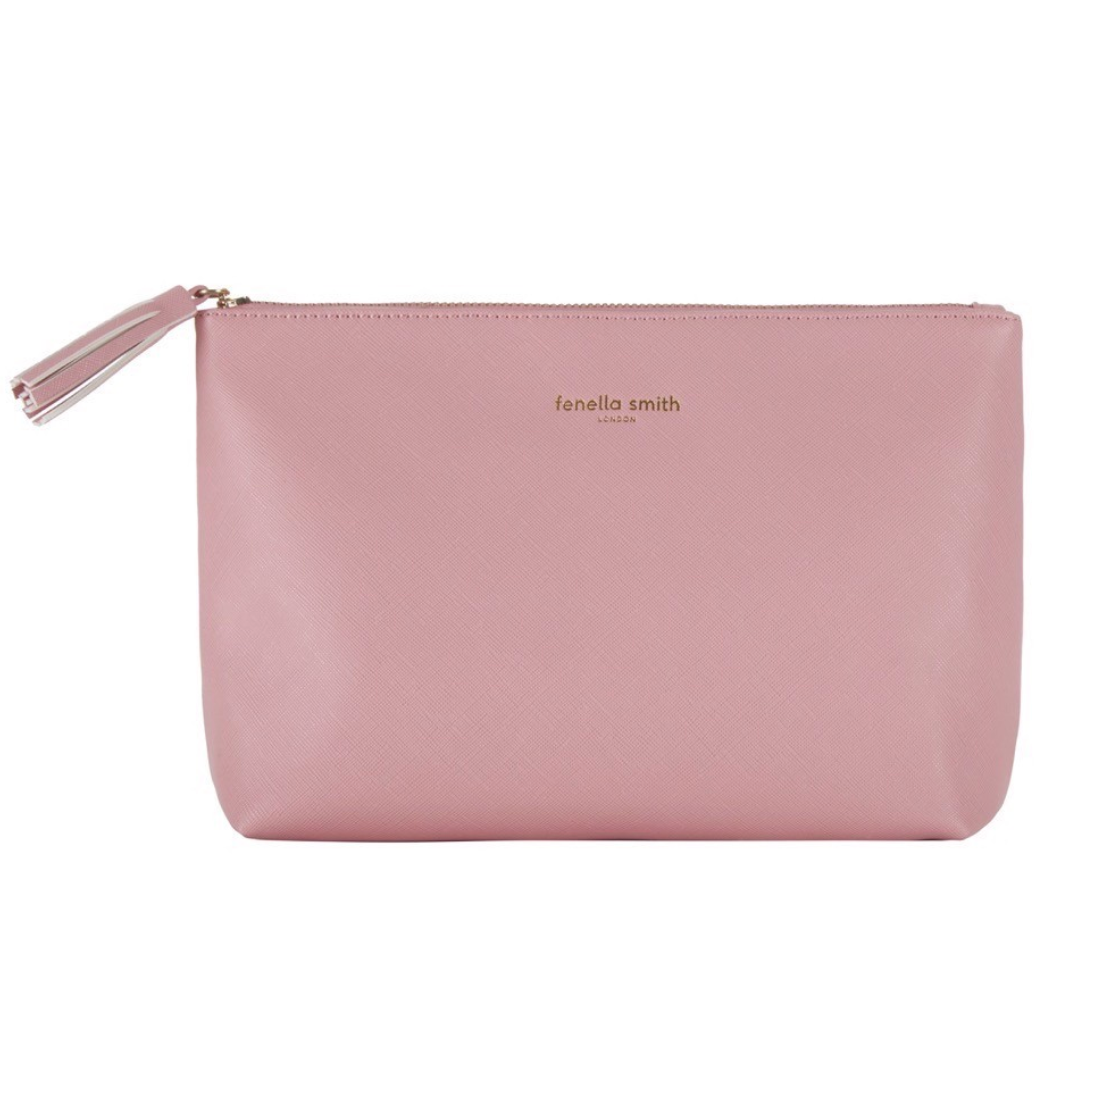 BLUSH PINK VEGAN LEATHER WASHBAG